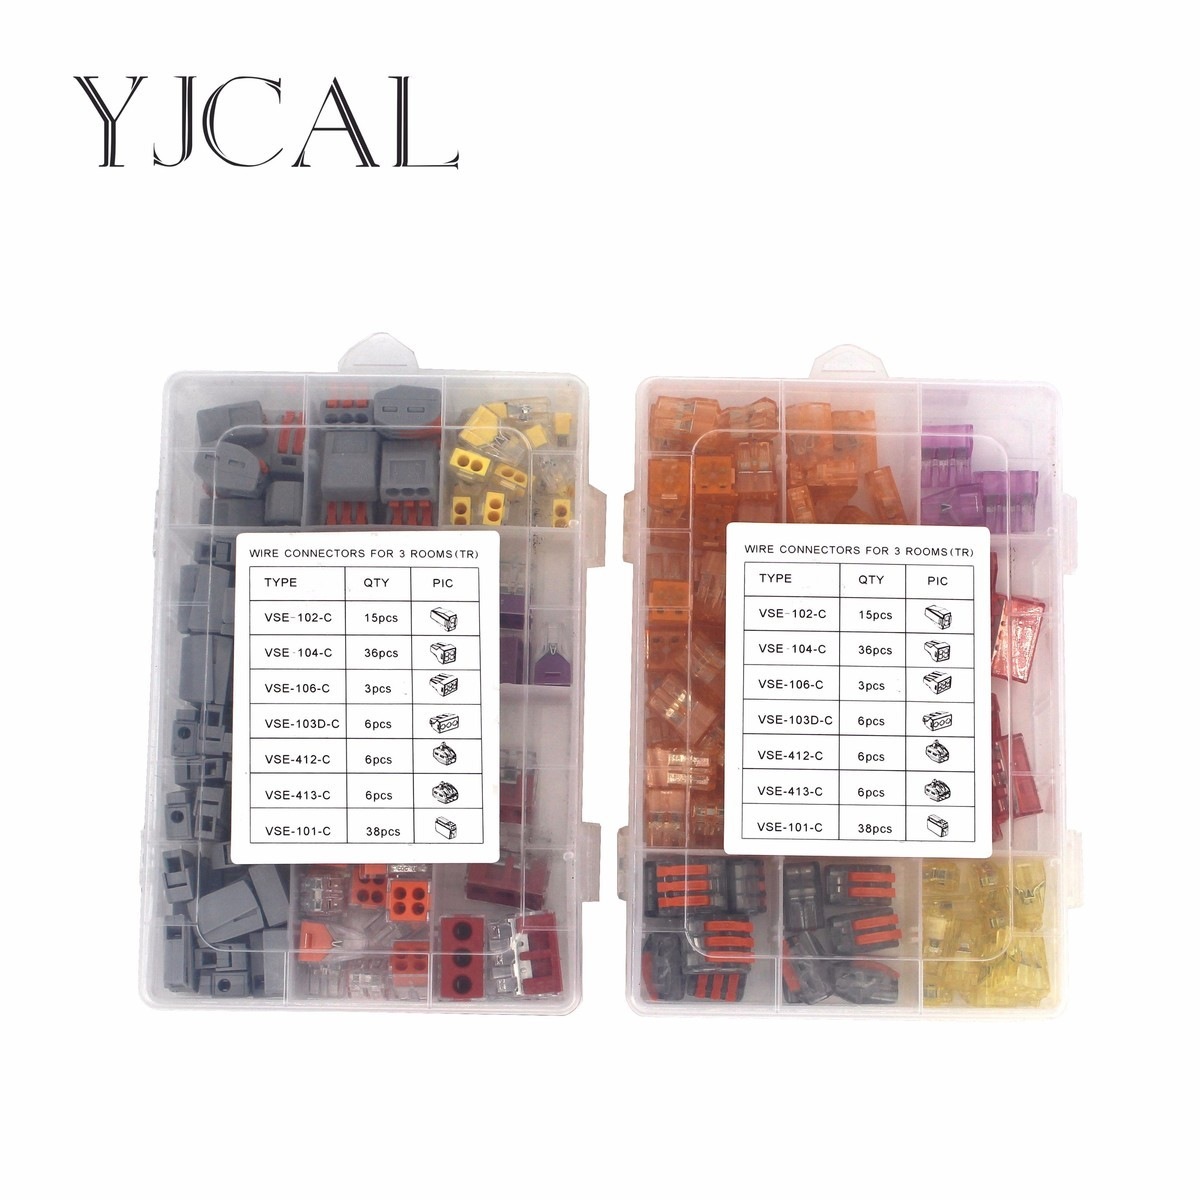 Wago Type Wire Connector 110PCS/Box Universal Compact Terminal Block Lighting Wire Connector For 3 Room Mixed Quick Connector eglo connector box 91207